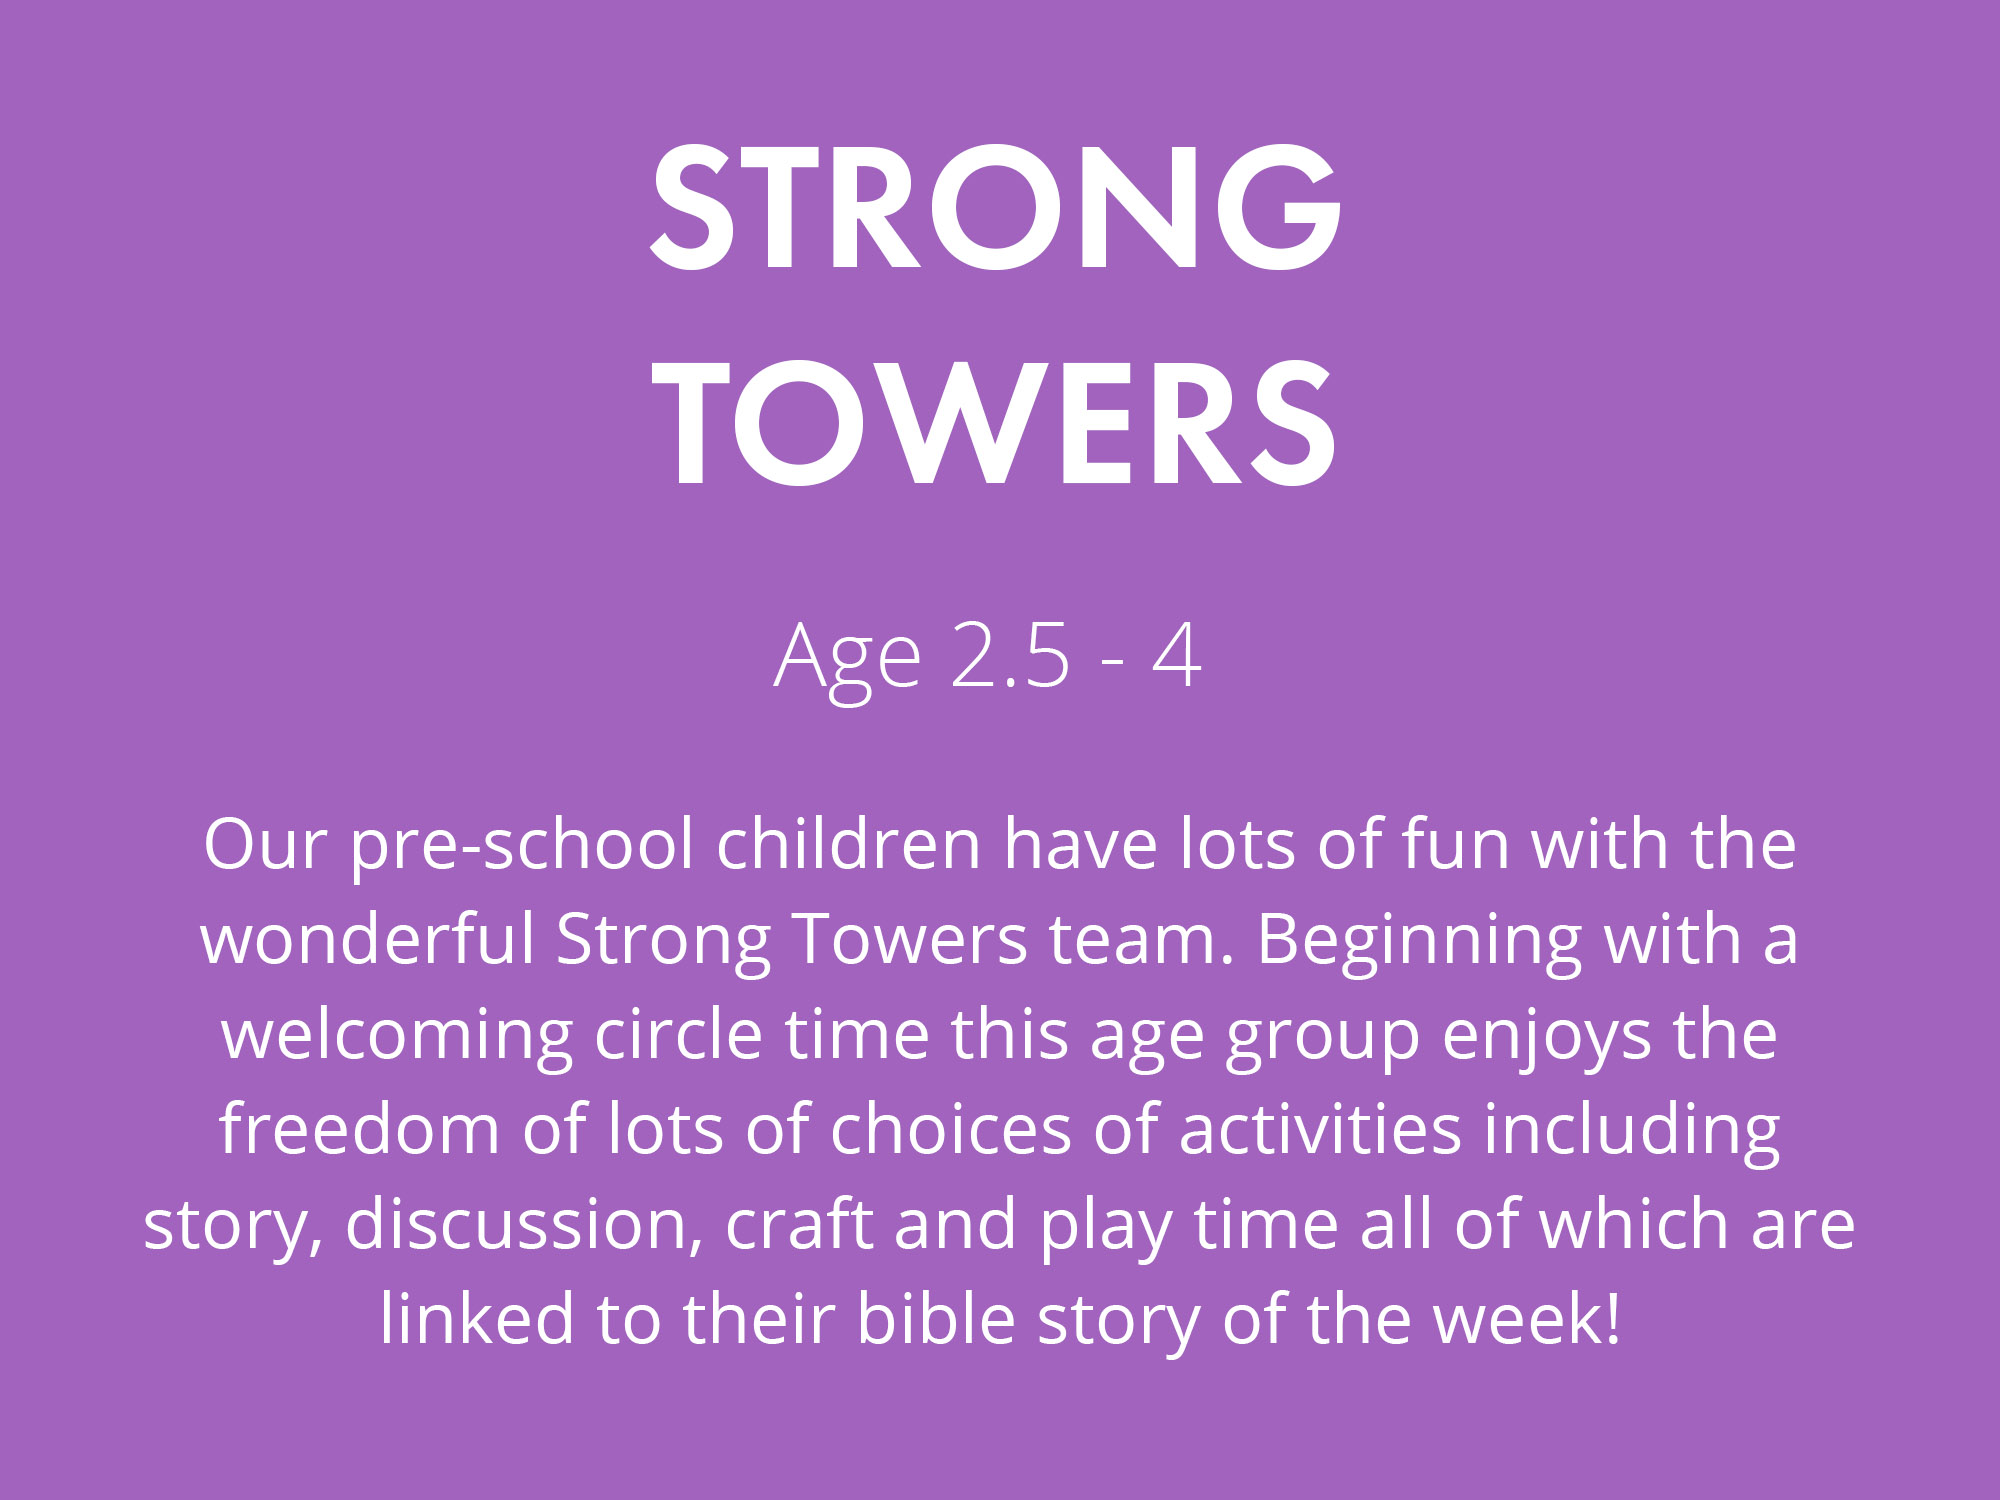 children-groups-about-strong-towers2.jpg